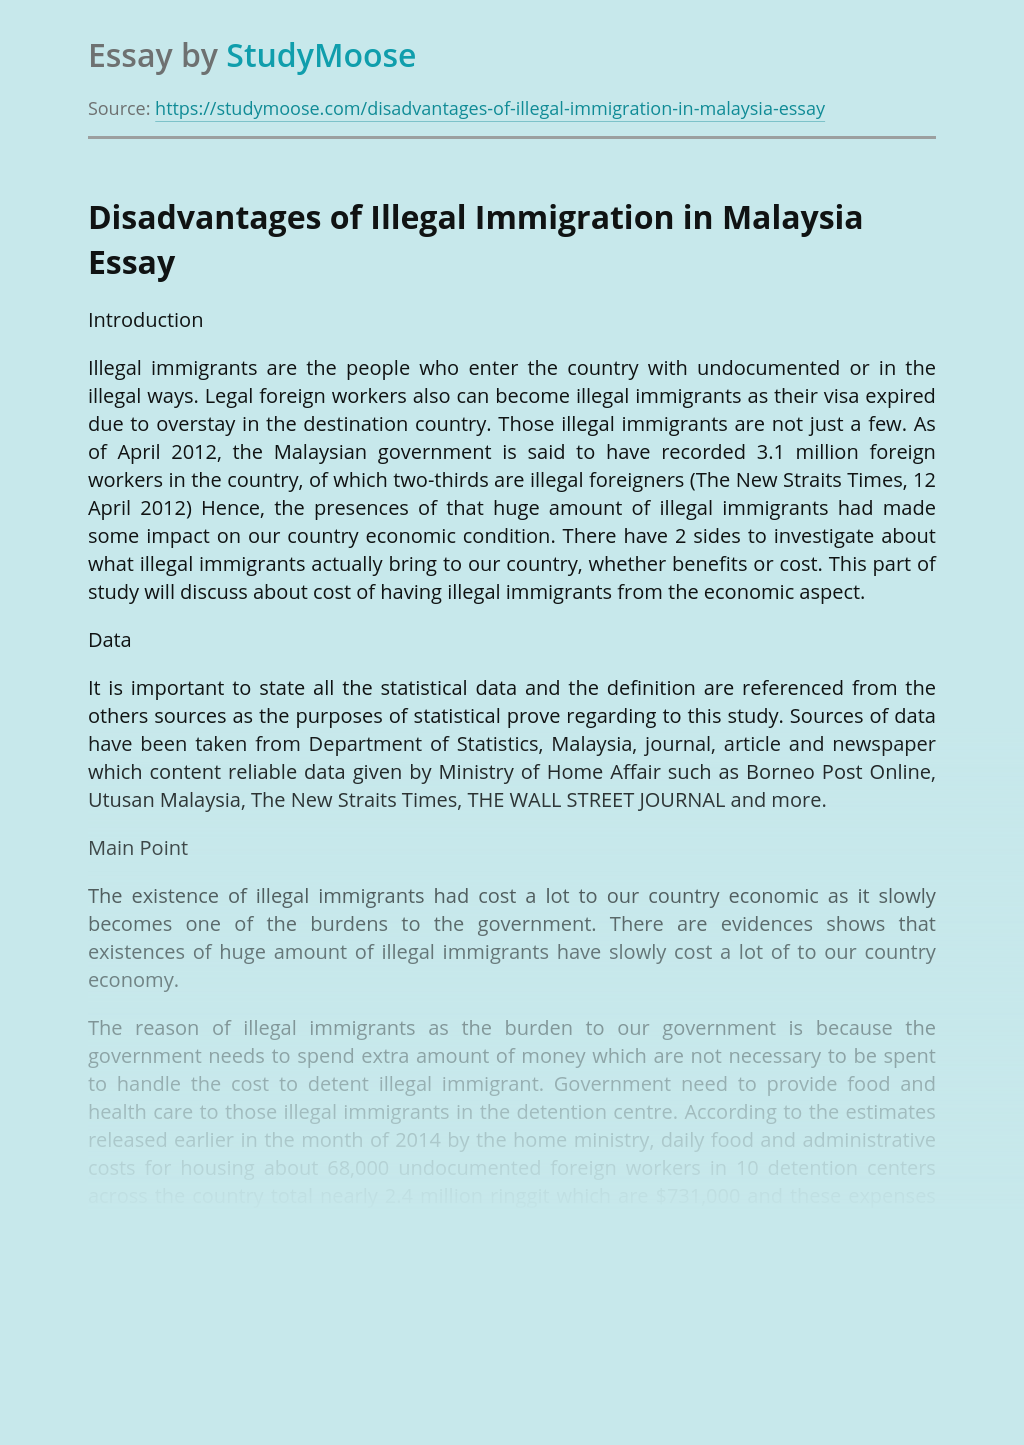 Disadvantages of Illegal Immigration in Malaysia